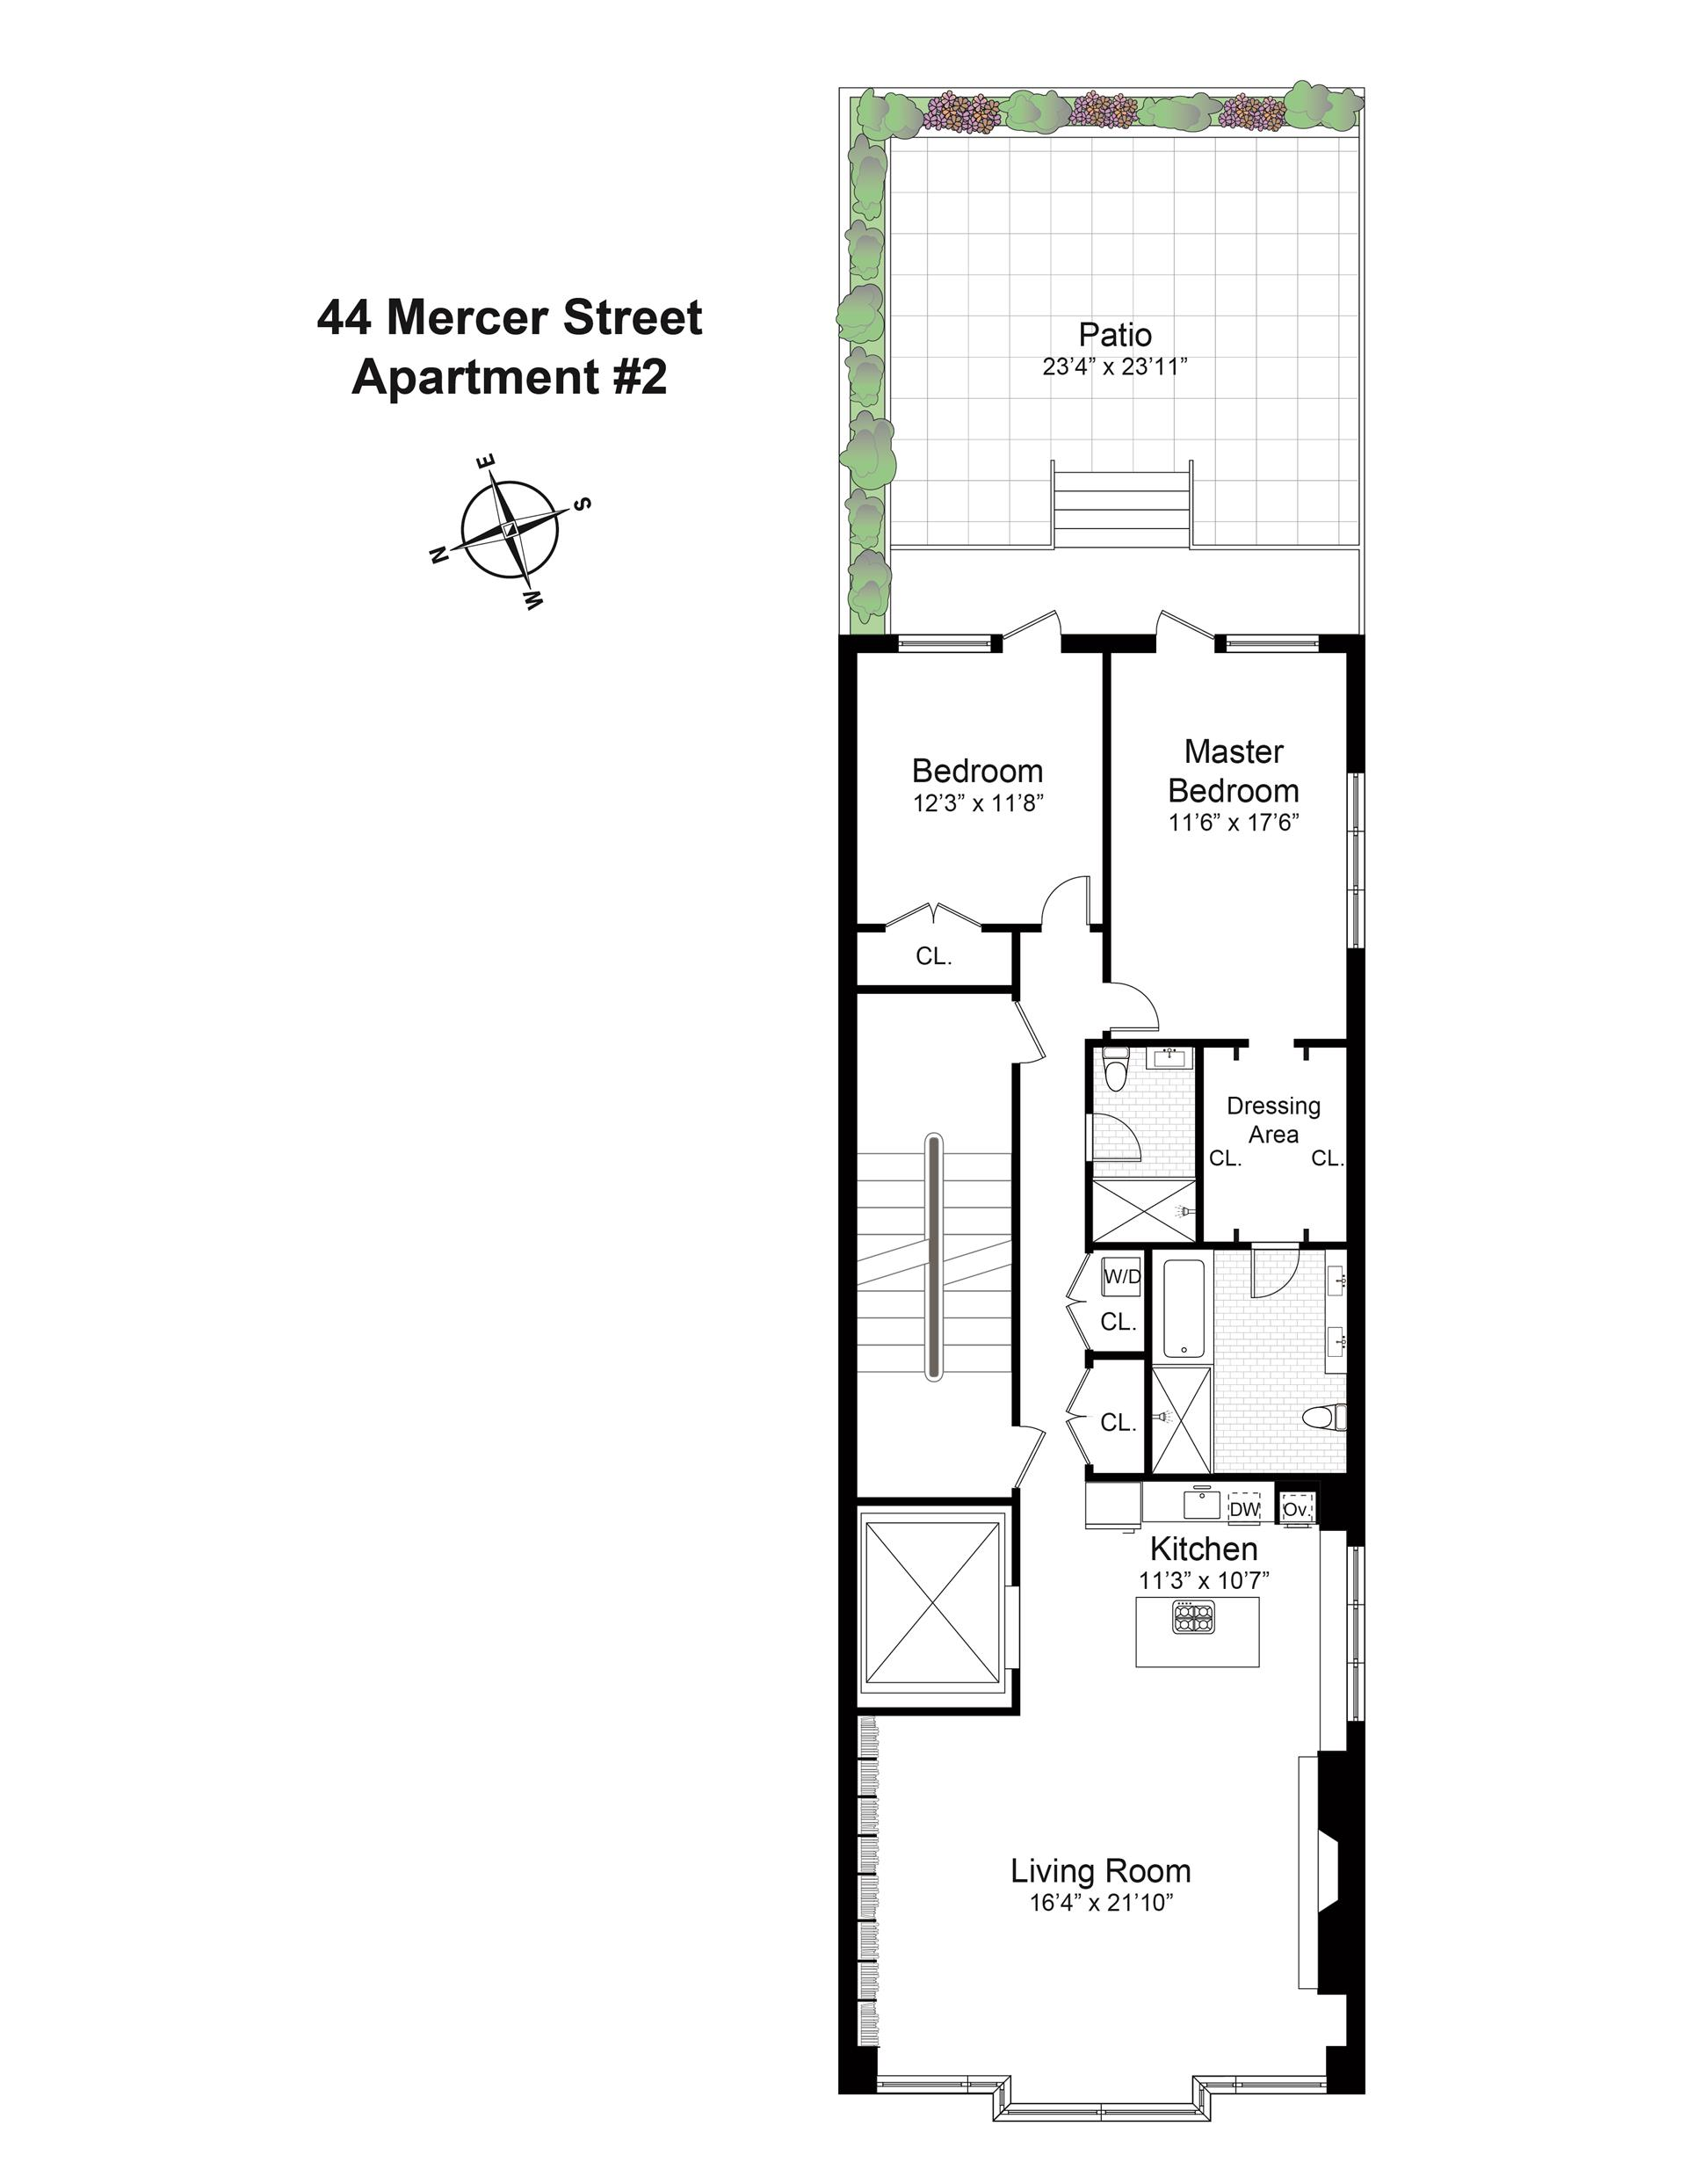 Floor plan of 44 Mercer Street, 2 - SoHo - Nolita, New York